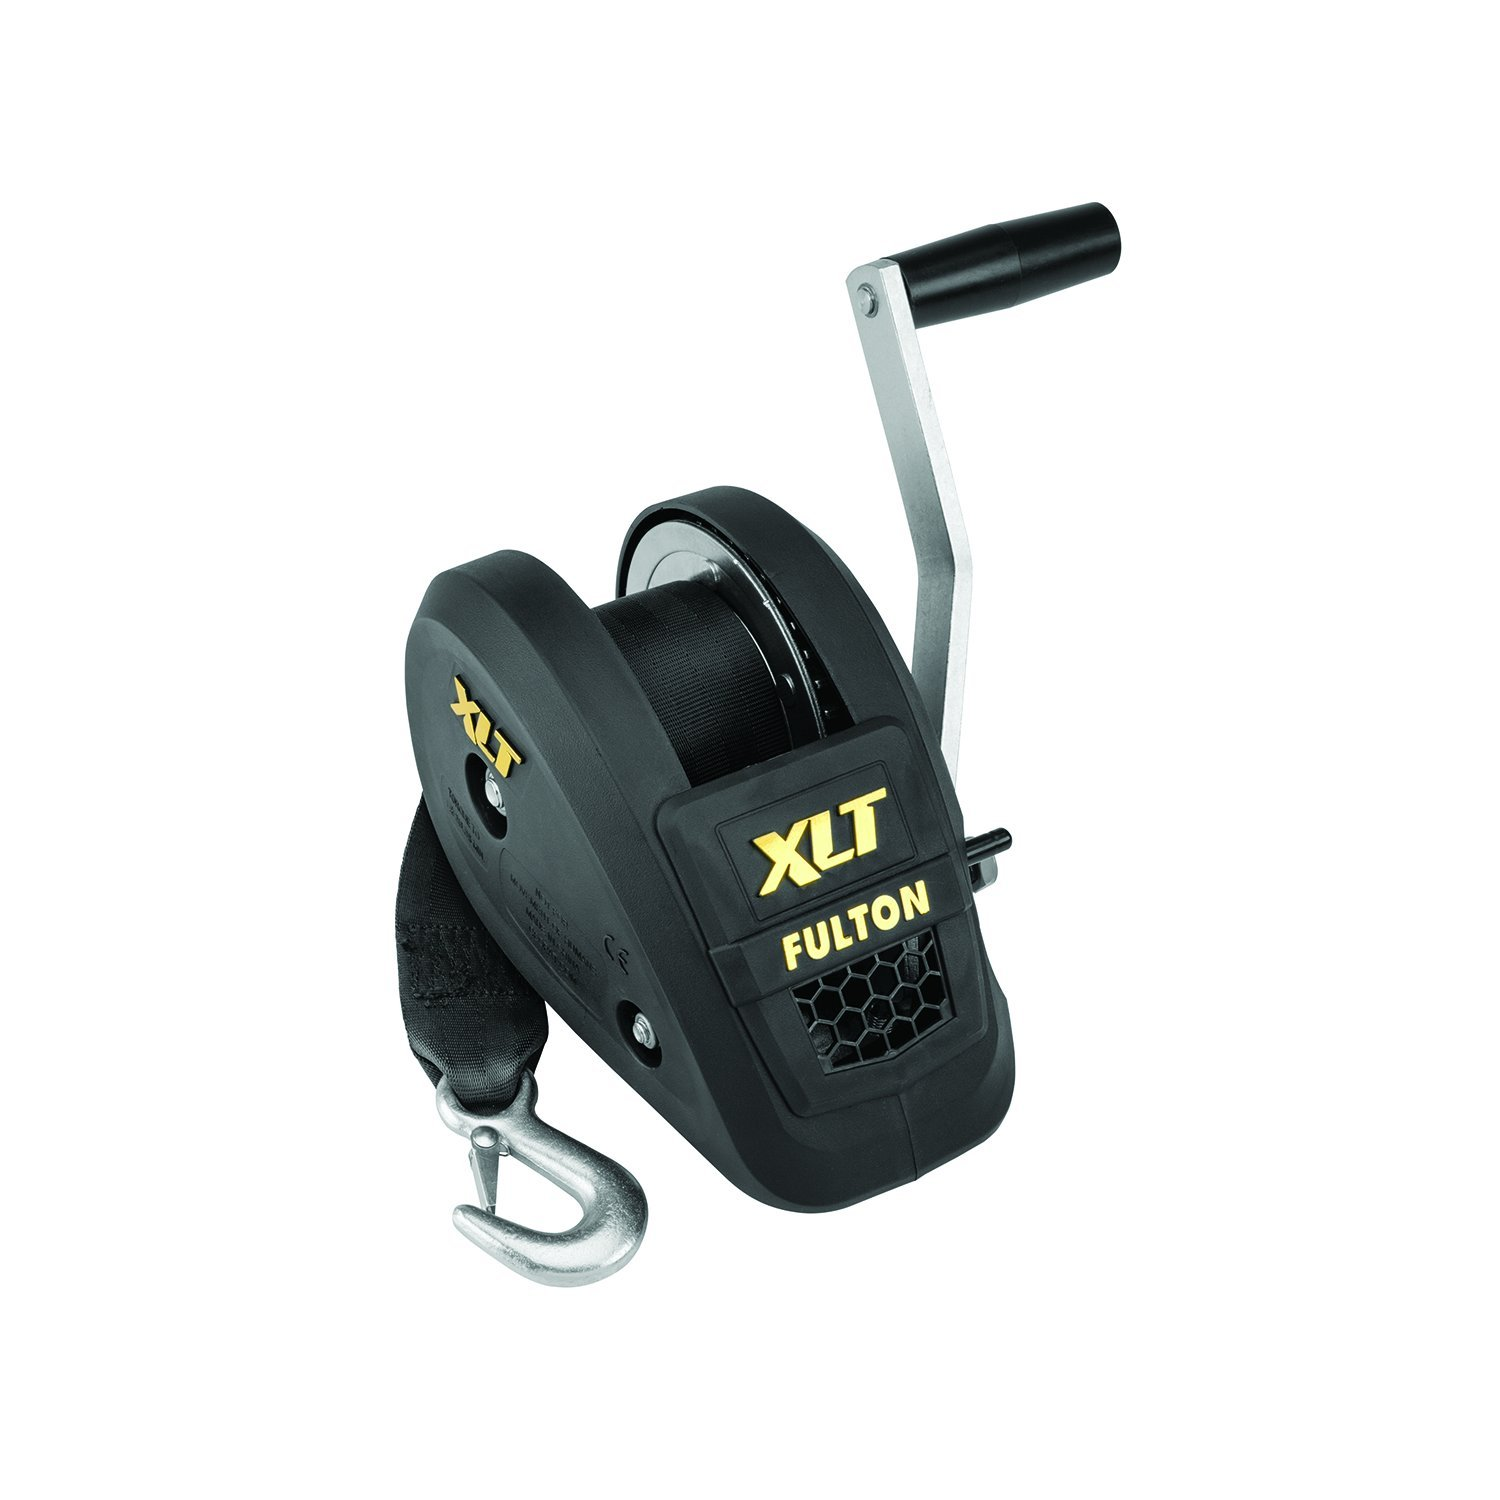 Fulton 142311 Single Speed Winch with 20' Strap and Cover - 1400 lbs. Capacity, 1 Pack